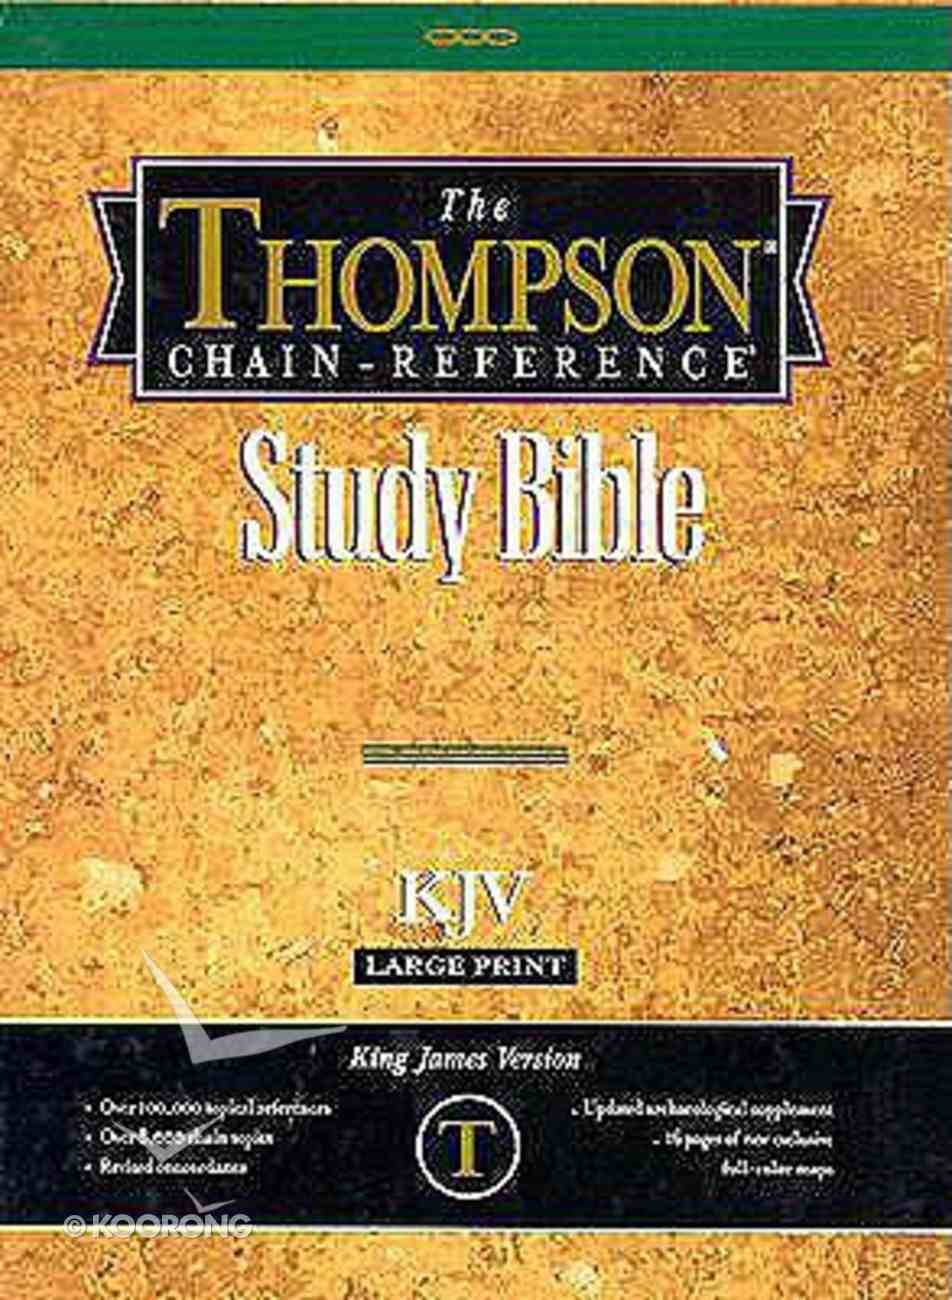 KJV Thompson Chain Reference Large Print Black Index (Red Letter Edition) Bonded Leather